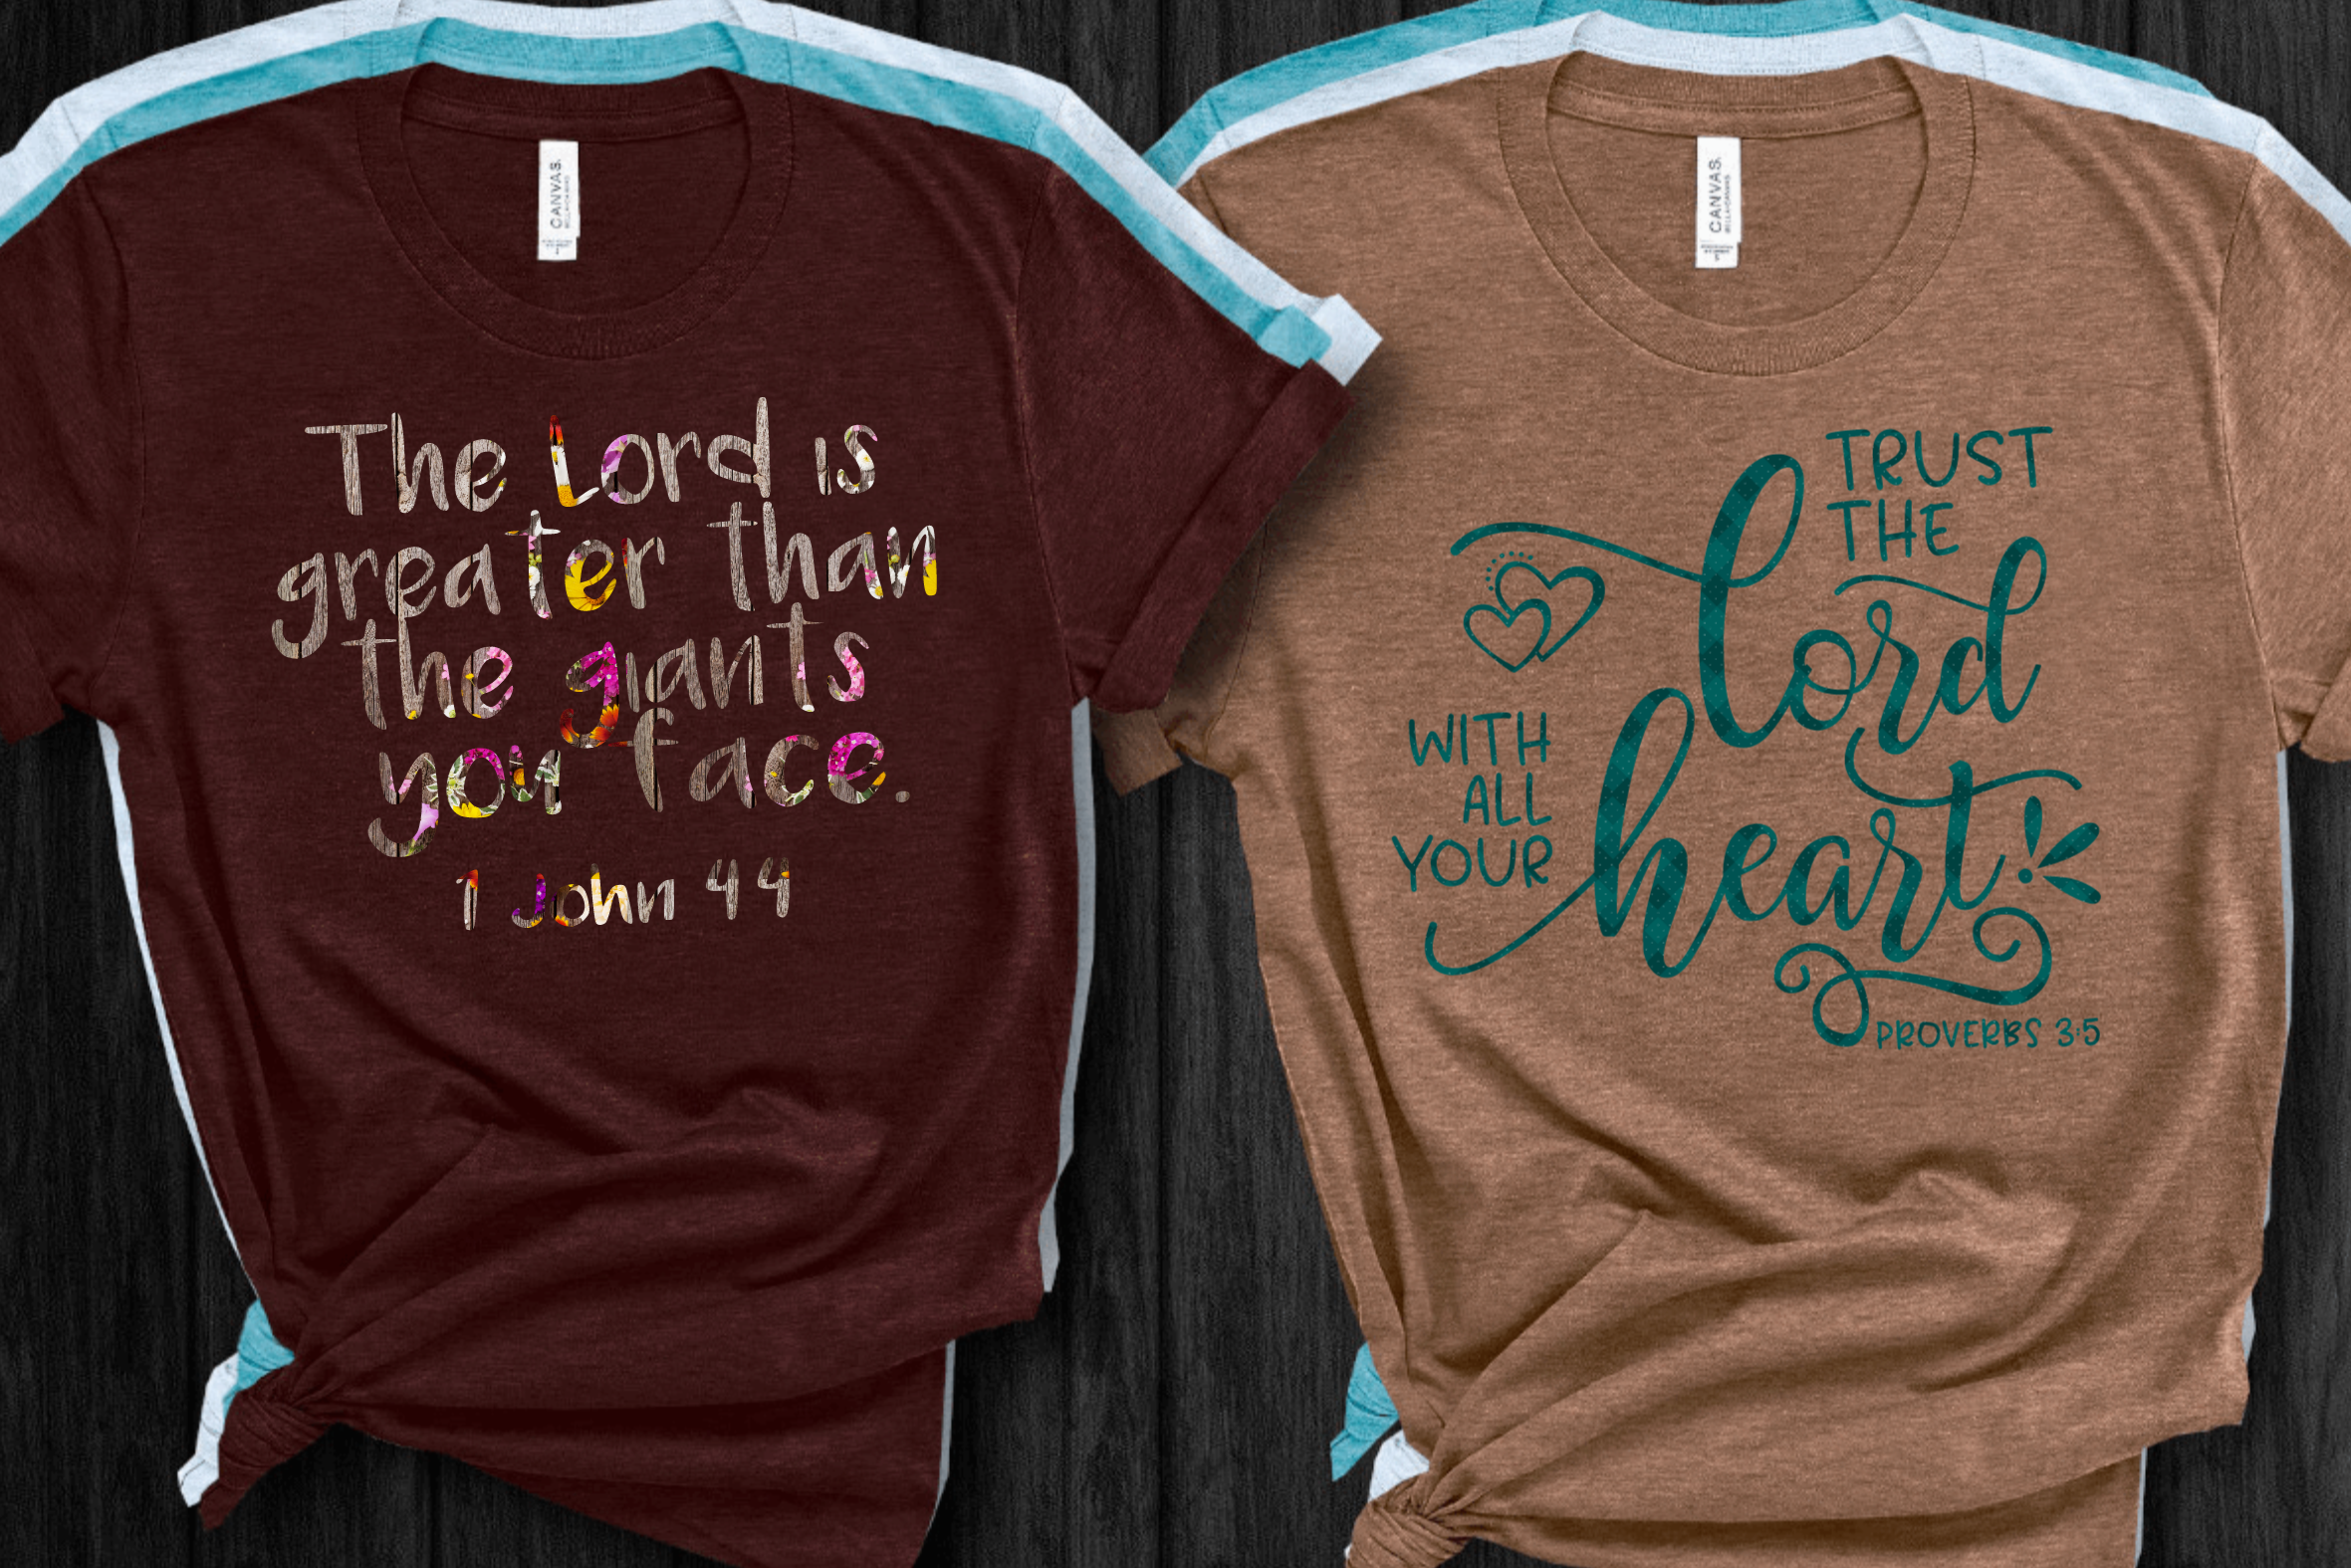 Trust The Lord With All Your Heart Short Sleeve Women's Tshirt